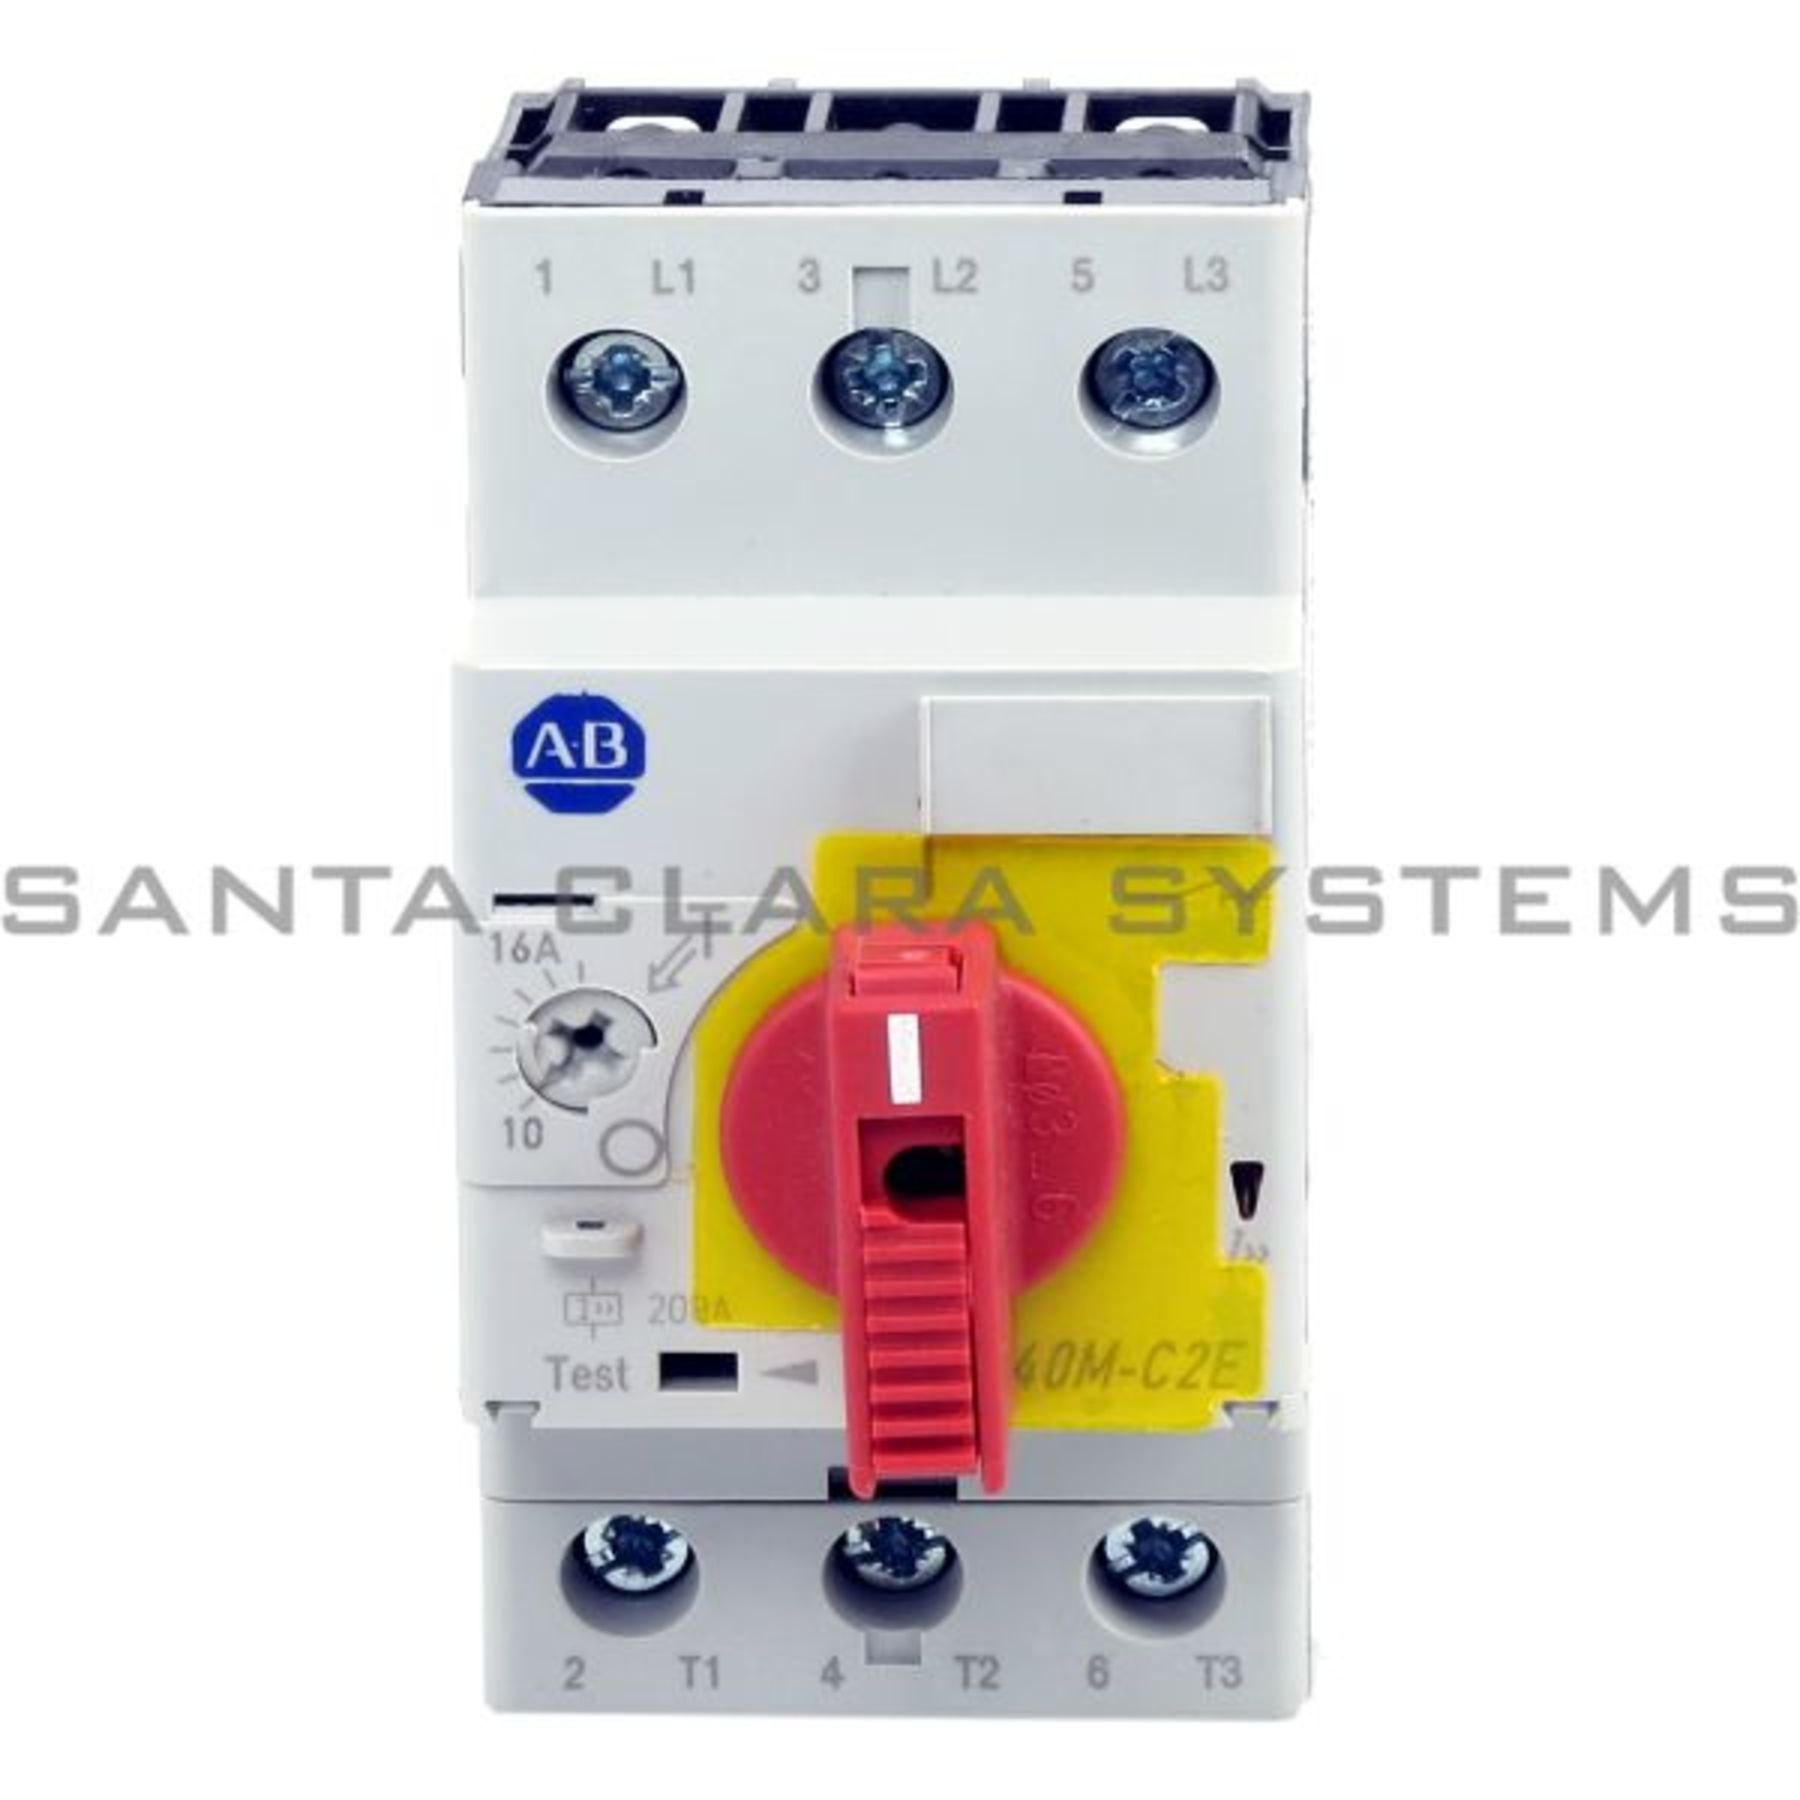 140m C2e C16 Ky Motor Protection Circuit Breaker Allen Bradley In Small Product Image